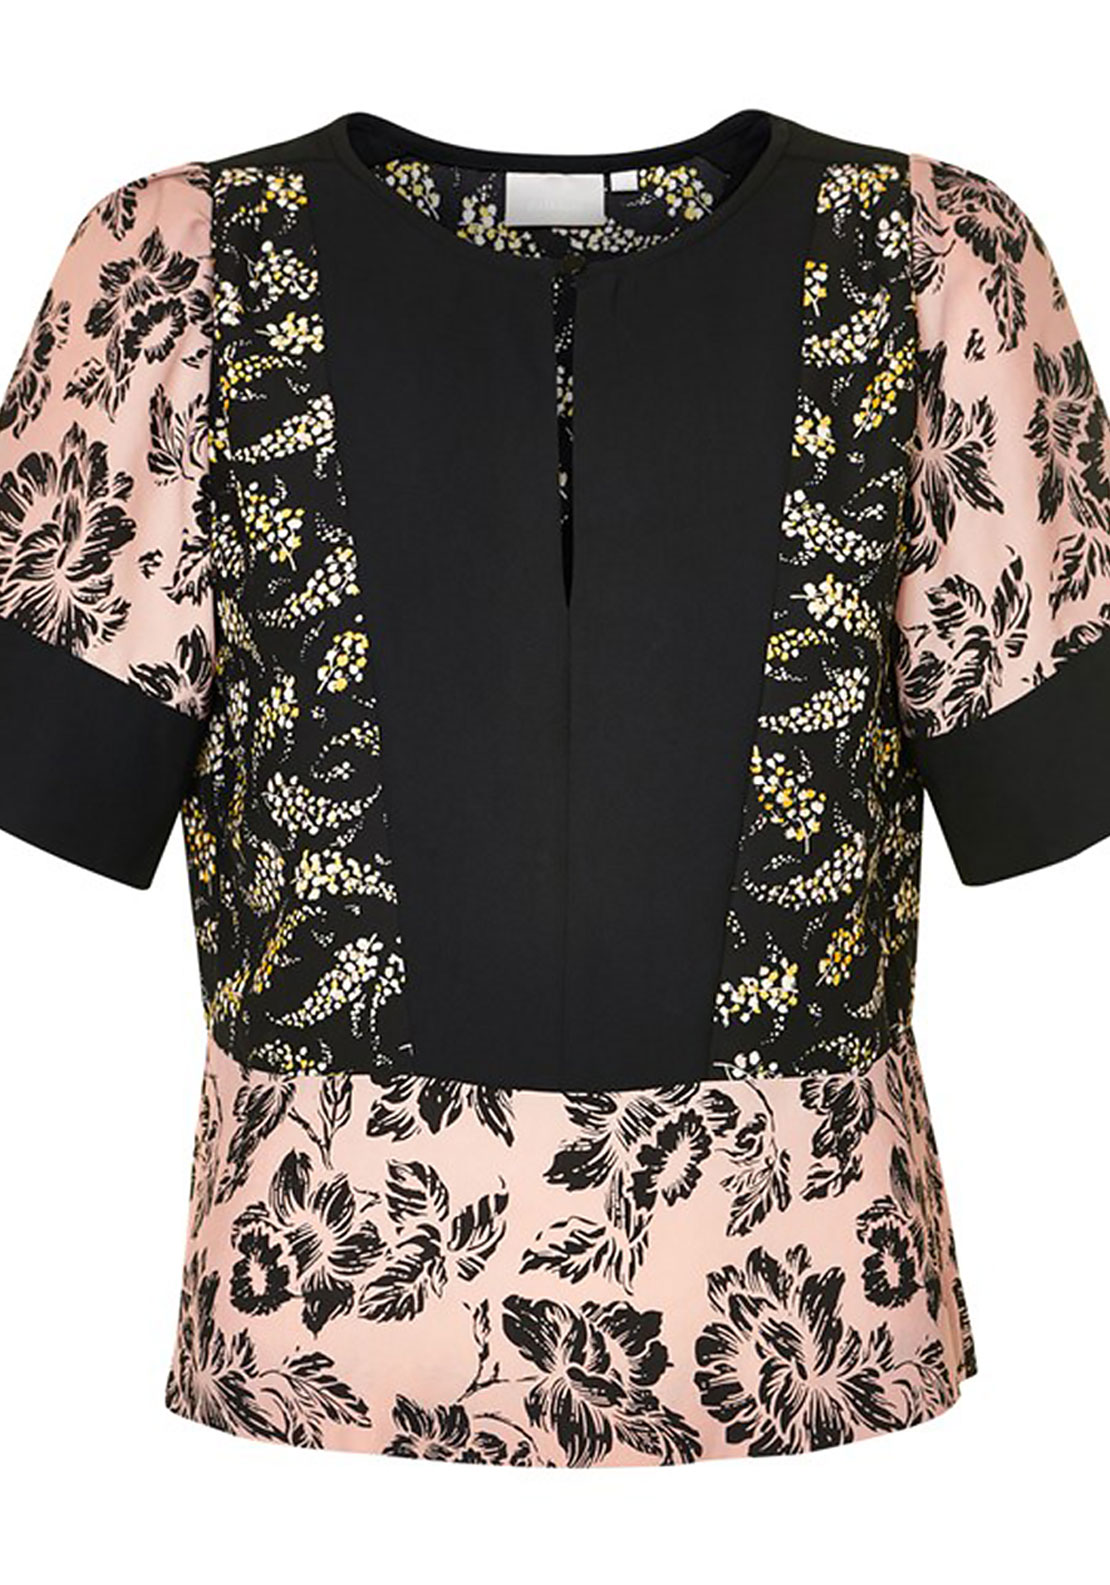 Inwear Luna Printed Top, Black and Nude